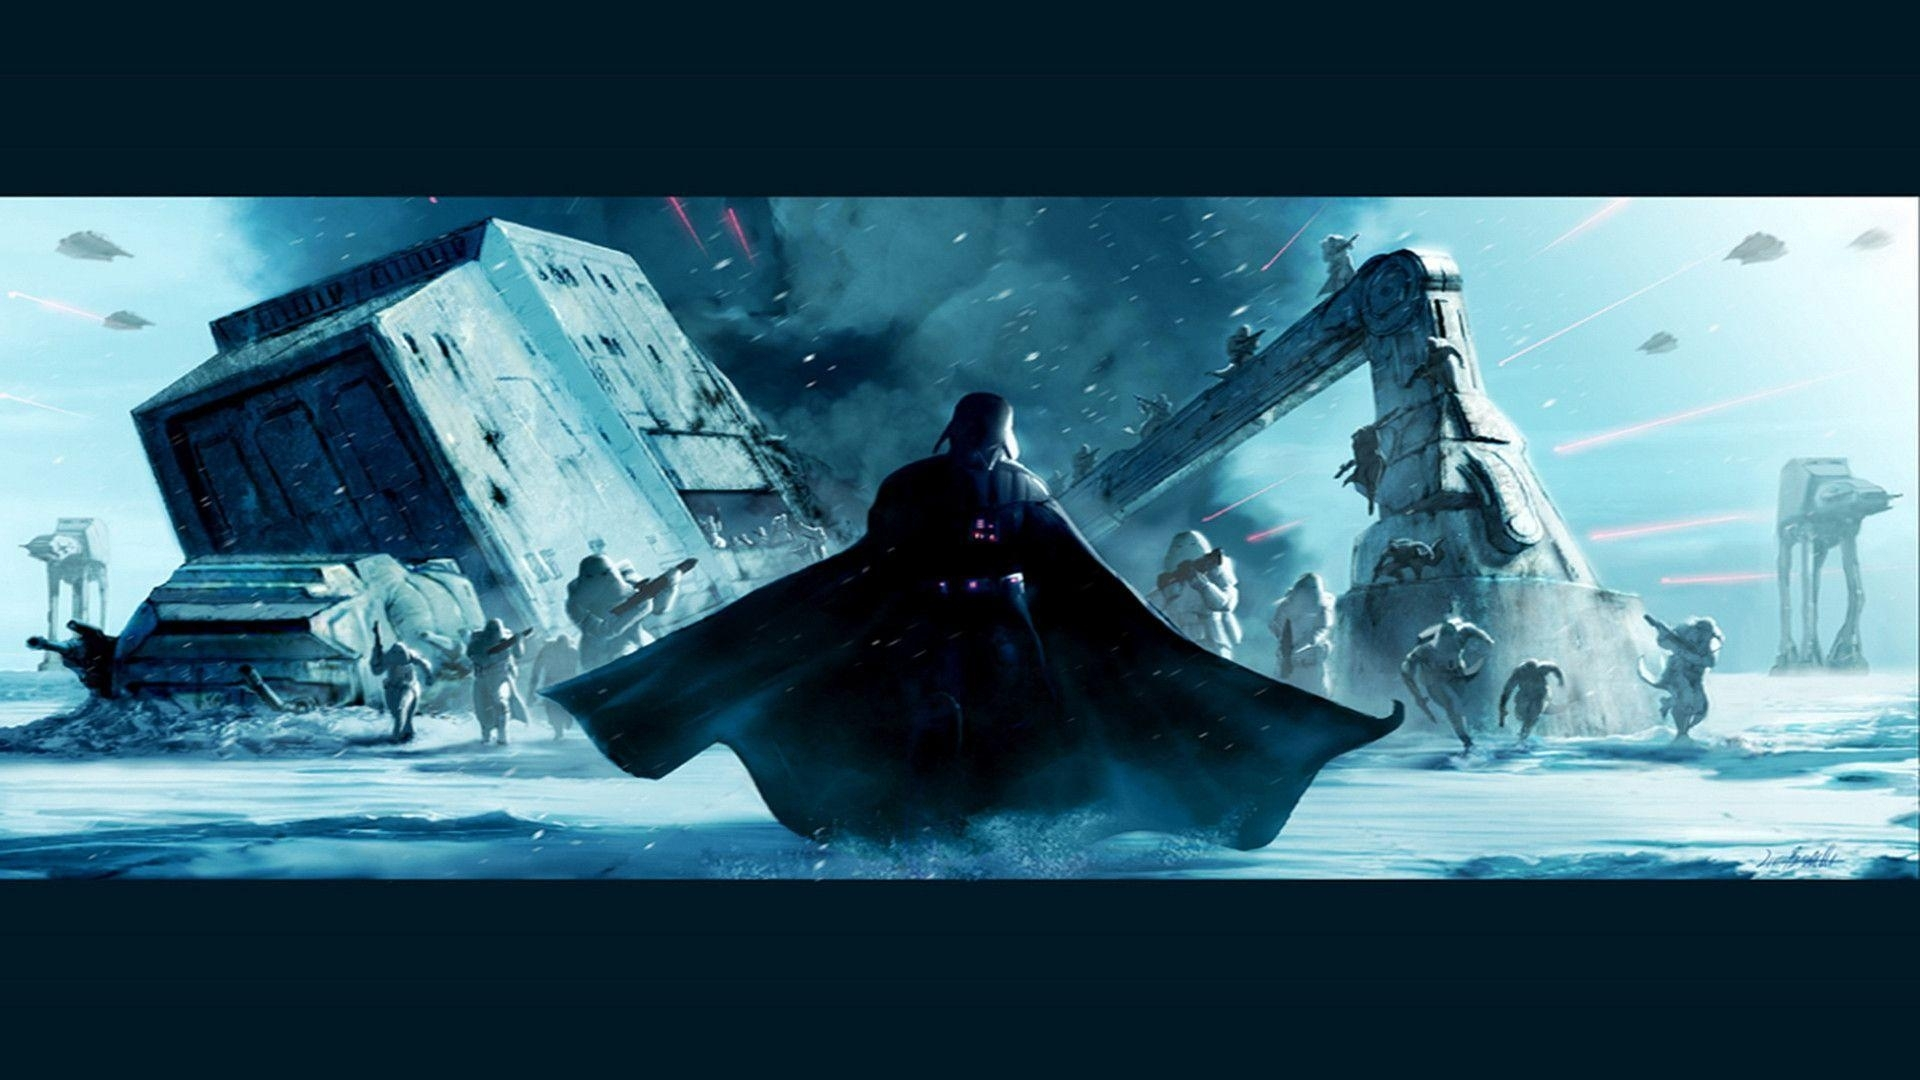 10 Latest Star Wars Wallpapers 1920X1080 Hd FULL HD 1080p For PC Background